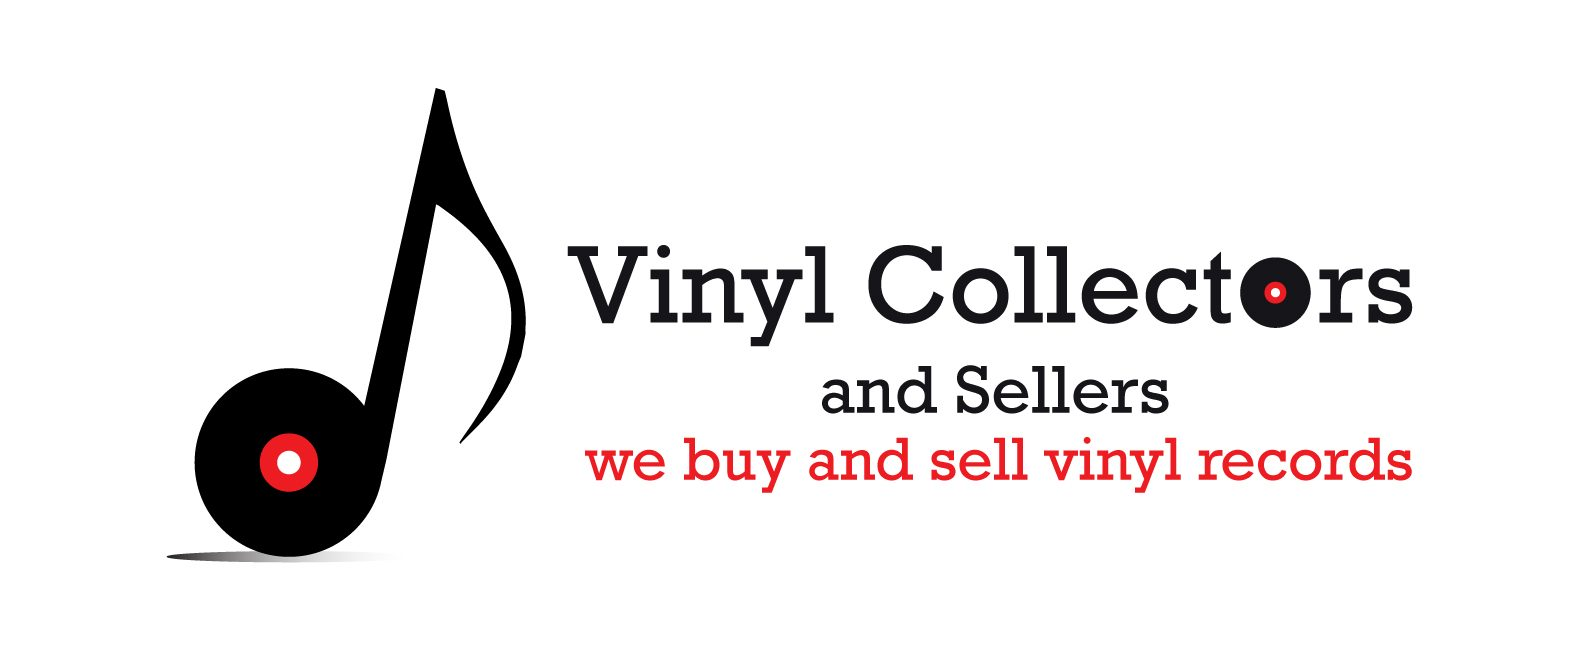 Vinyl Collectors and Sellers